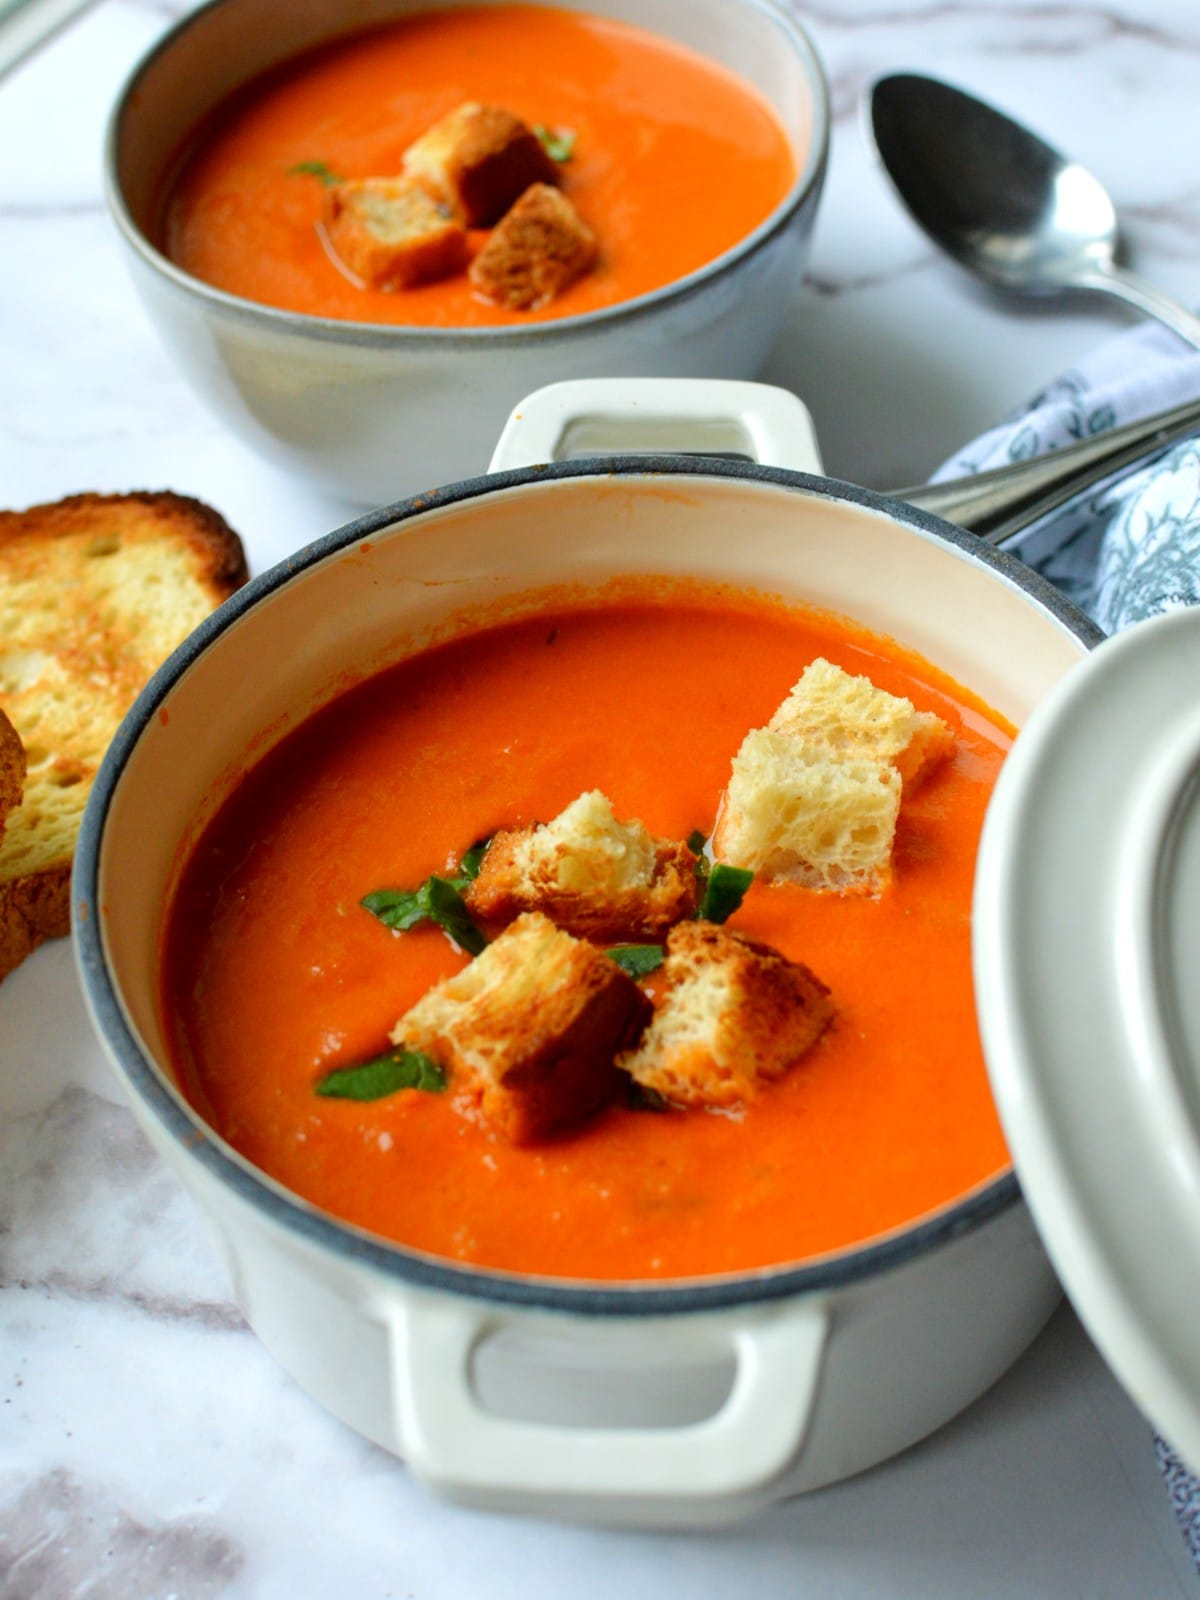 A bowl of tomato soup with croutons